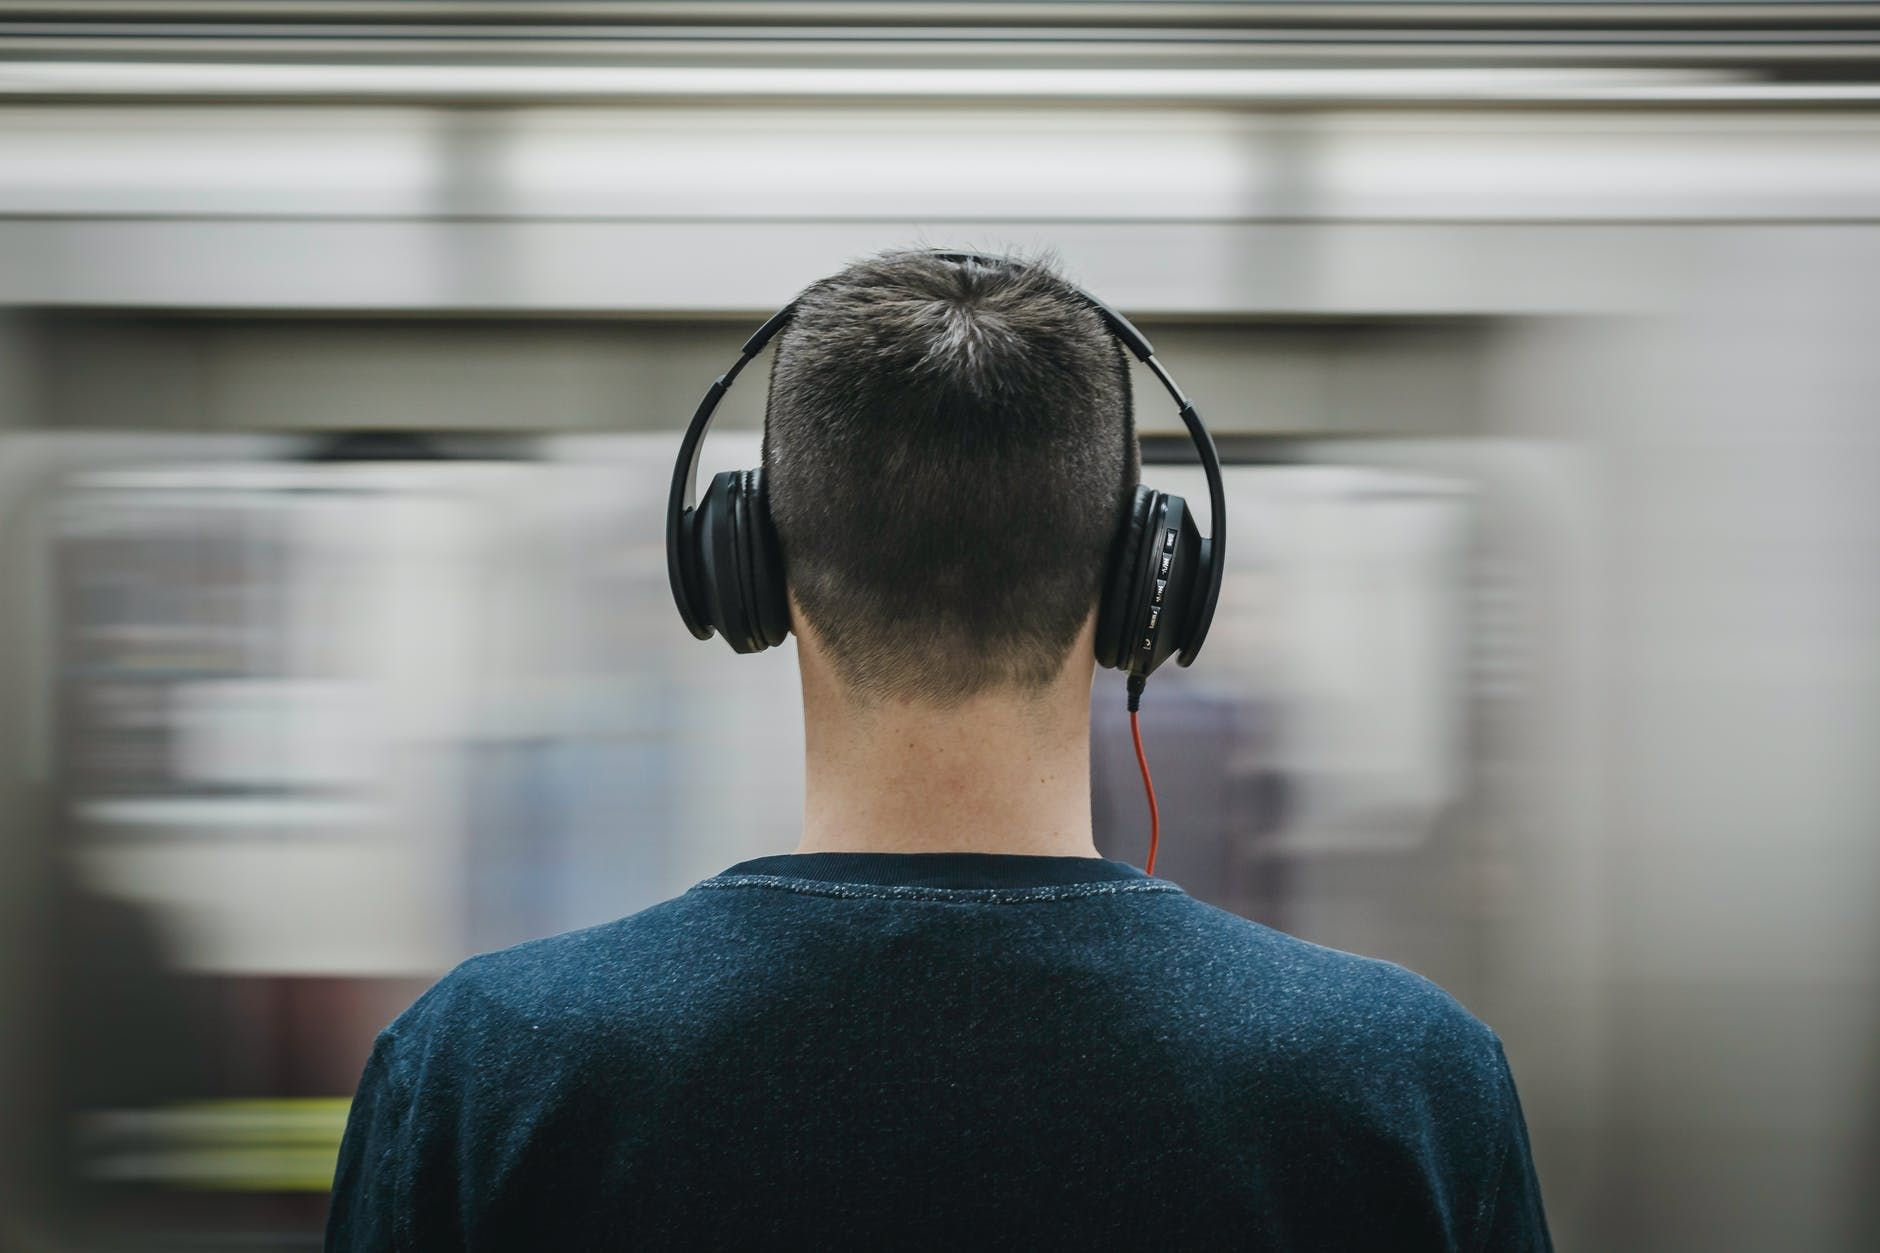 A man wearing headphones and looking out to the subway